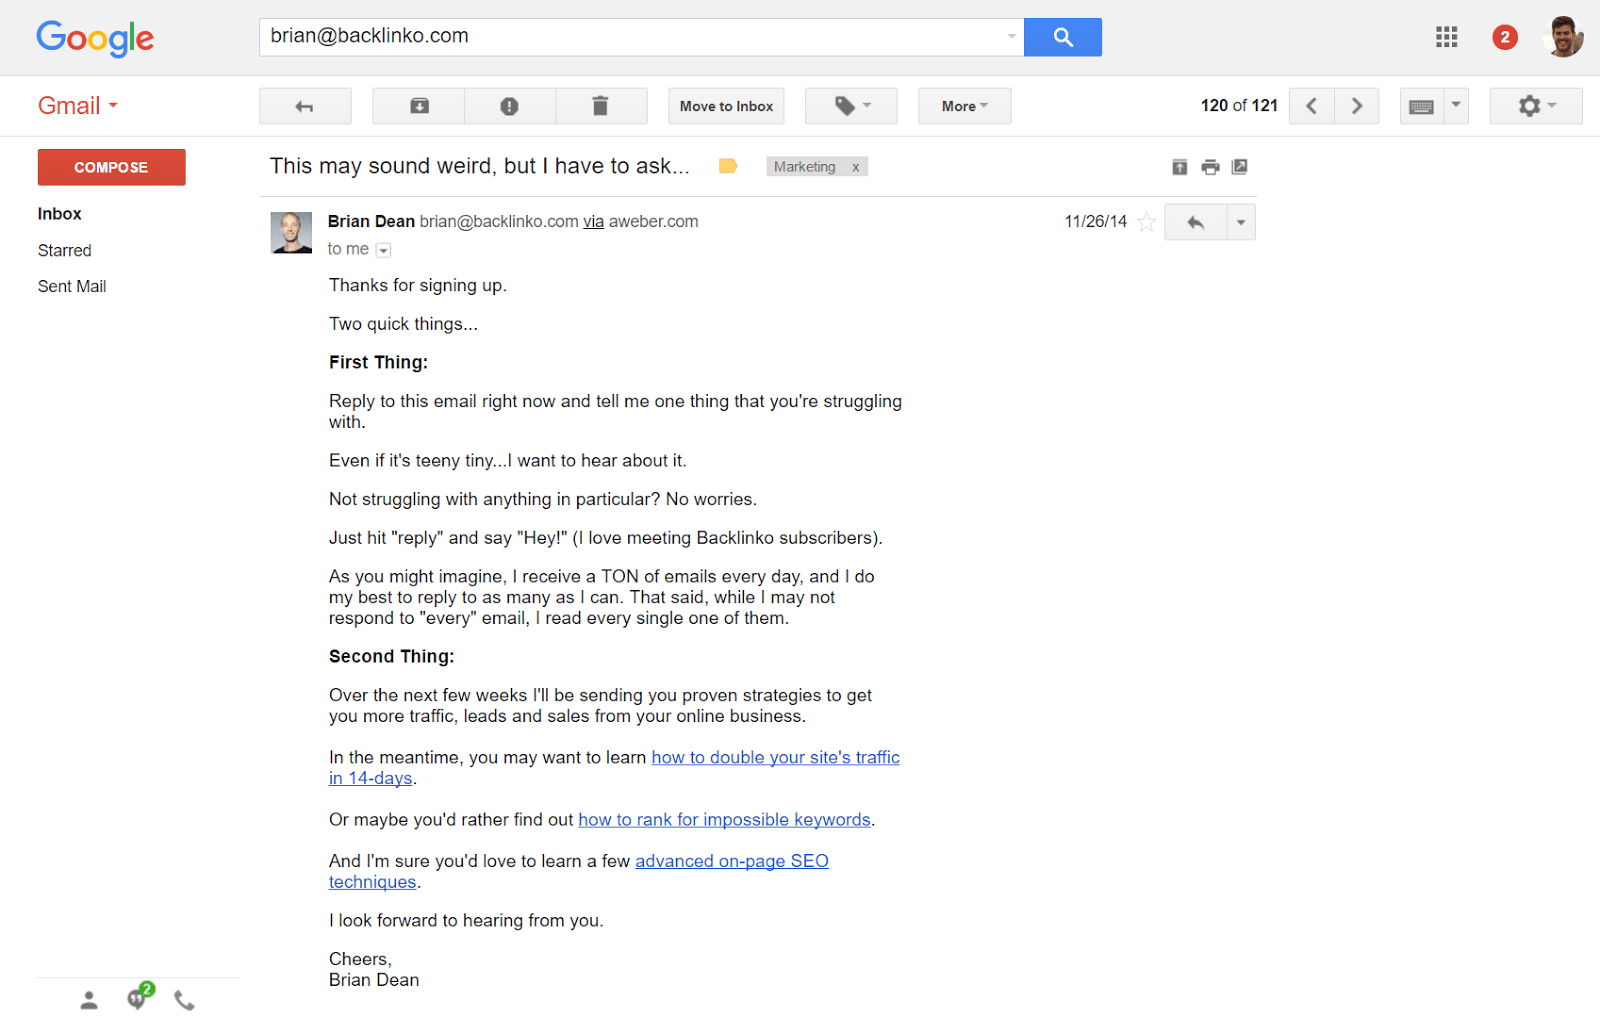 hight resolution of confirmation email from brian dean